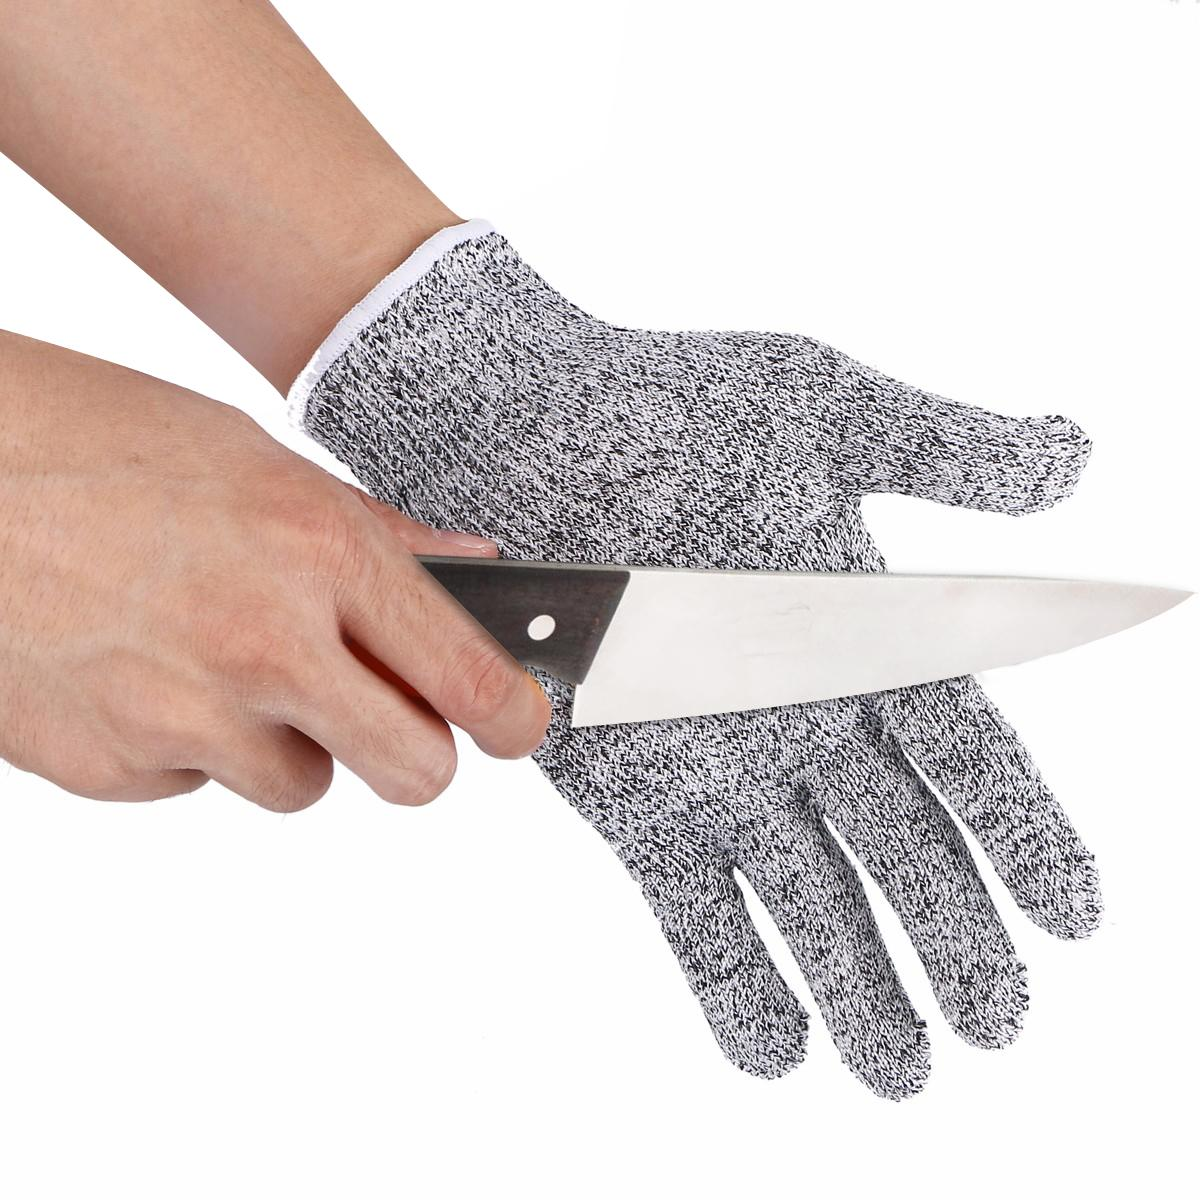 NEW Safurance Resistant Gloves Kitchen Cut Food Protection High Performance 5 Level Protection Workplace Safety Glove